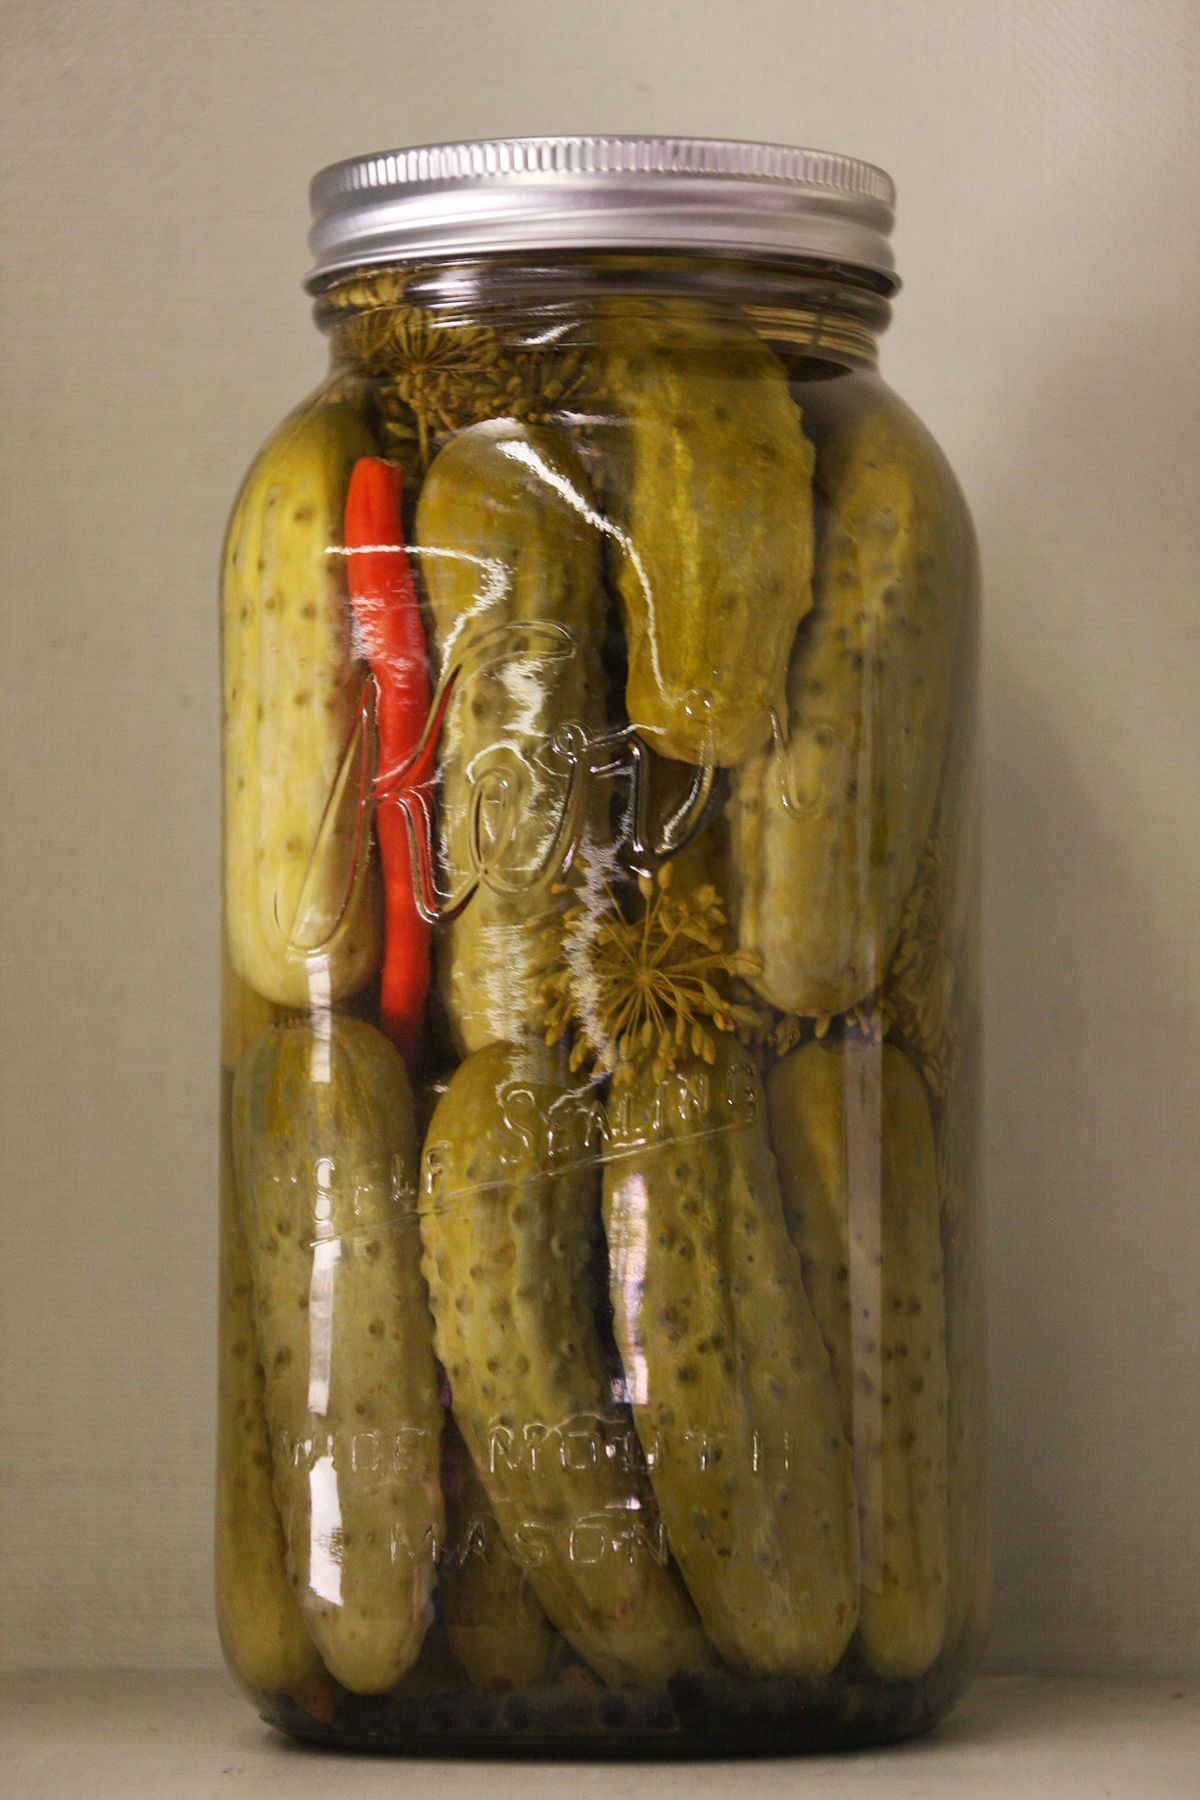 pickle - wiktionary